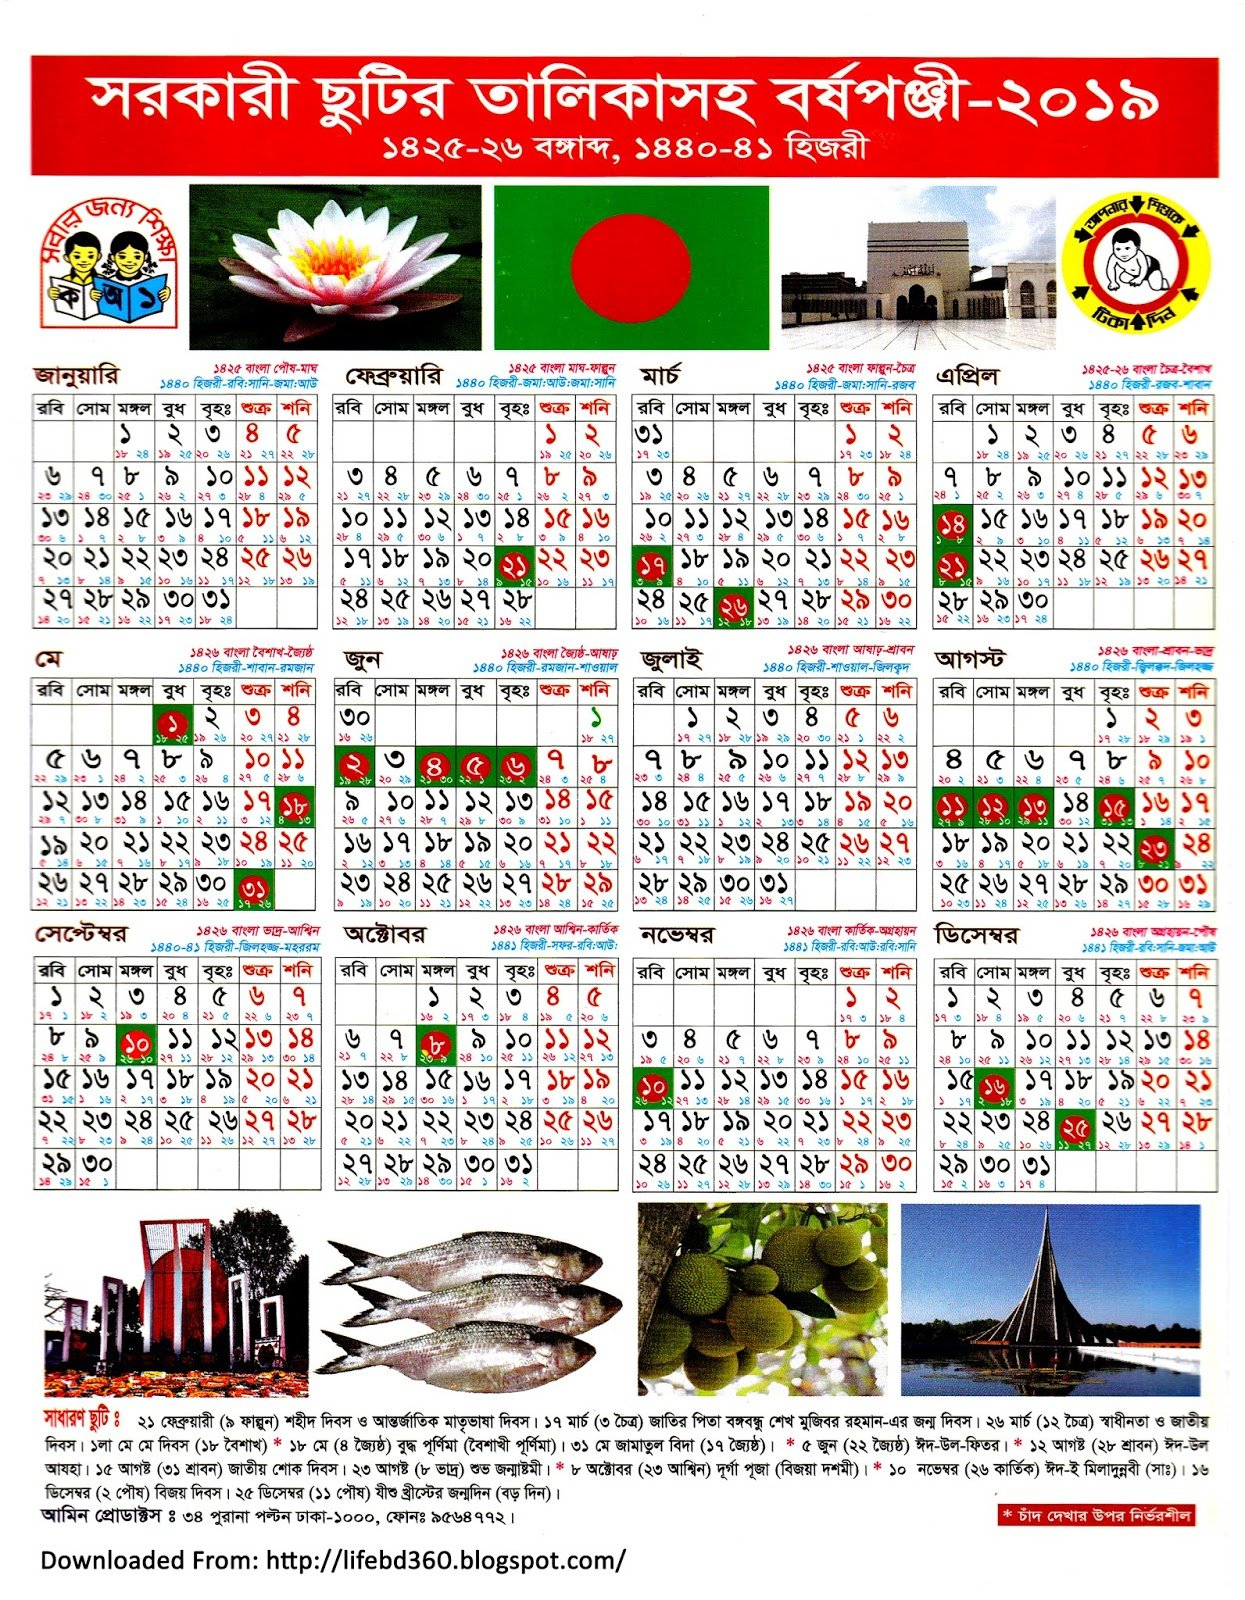 Bangladesh Government Holiday Calendar 2019 | Life In Bangladesh Calendar 2019 Government Holidays